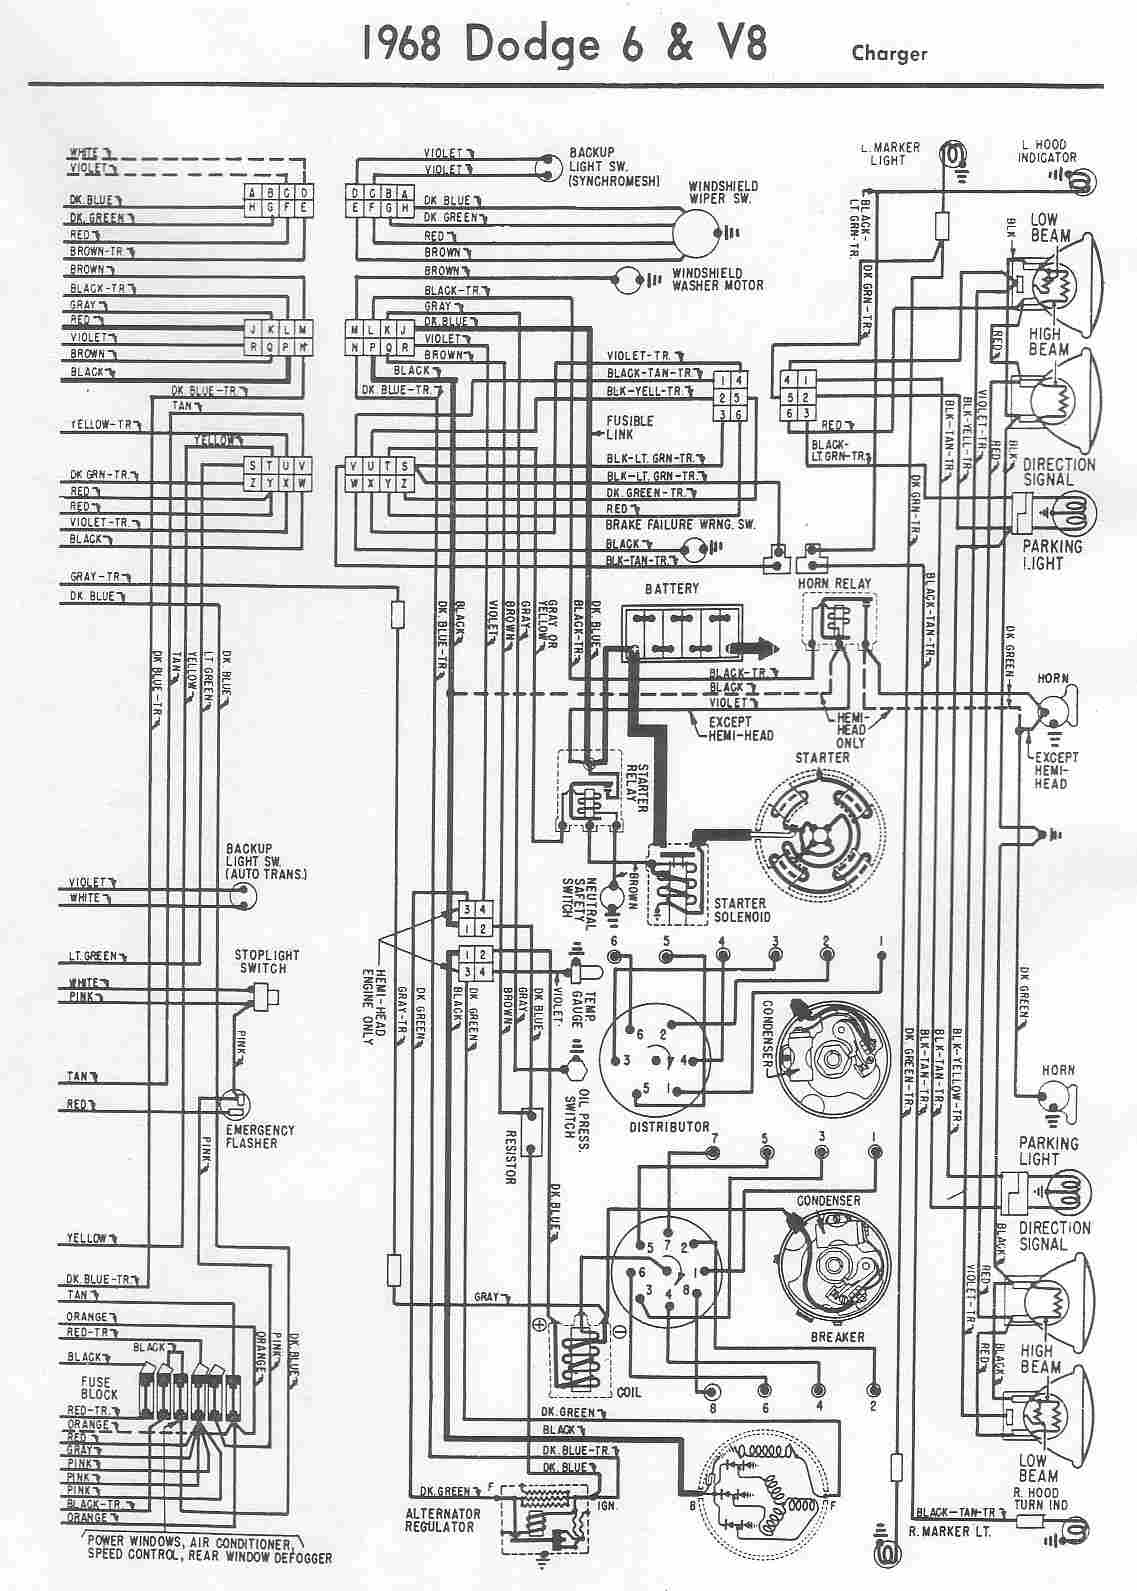 1973 dodge charger wiring diagram simple wiring post dash wiring diagram 91 mr2 1942 dodge wiring [ 1137 x 1591 Pixel ]